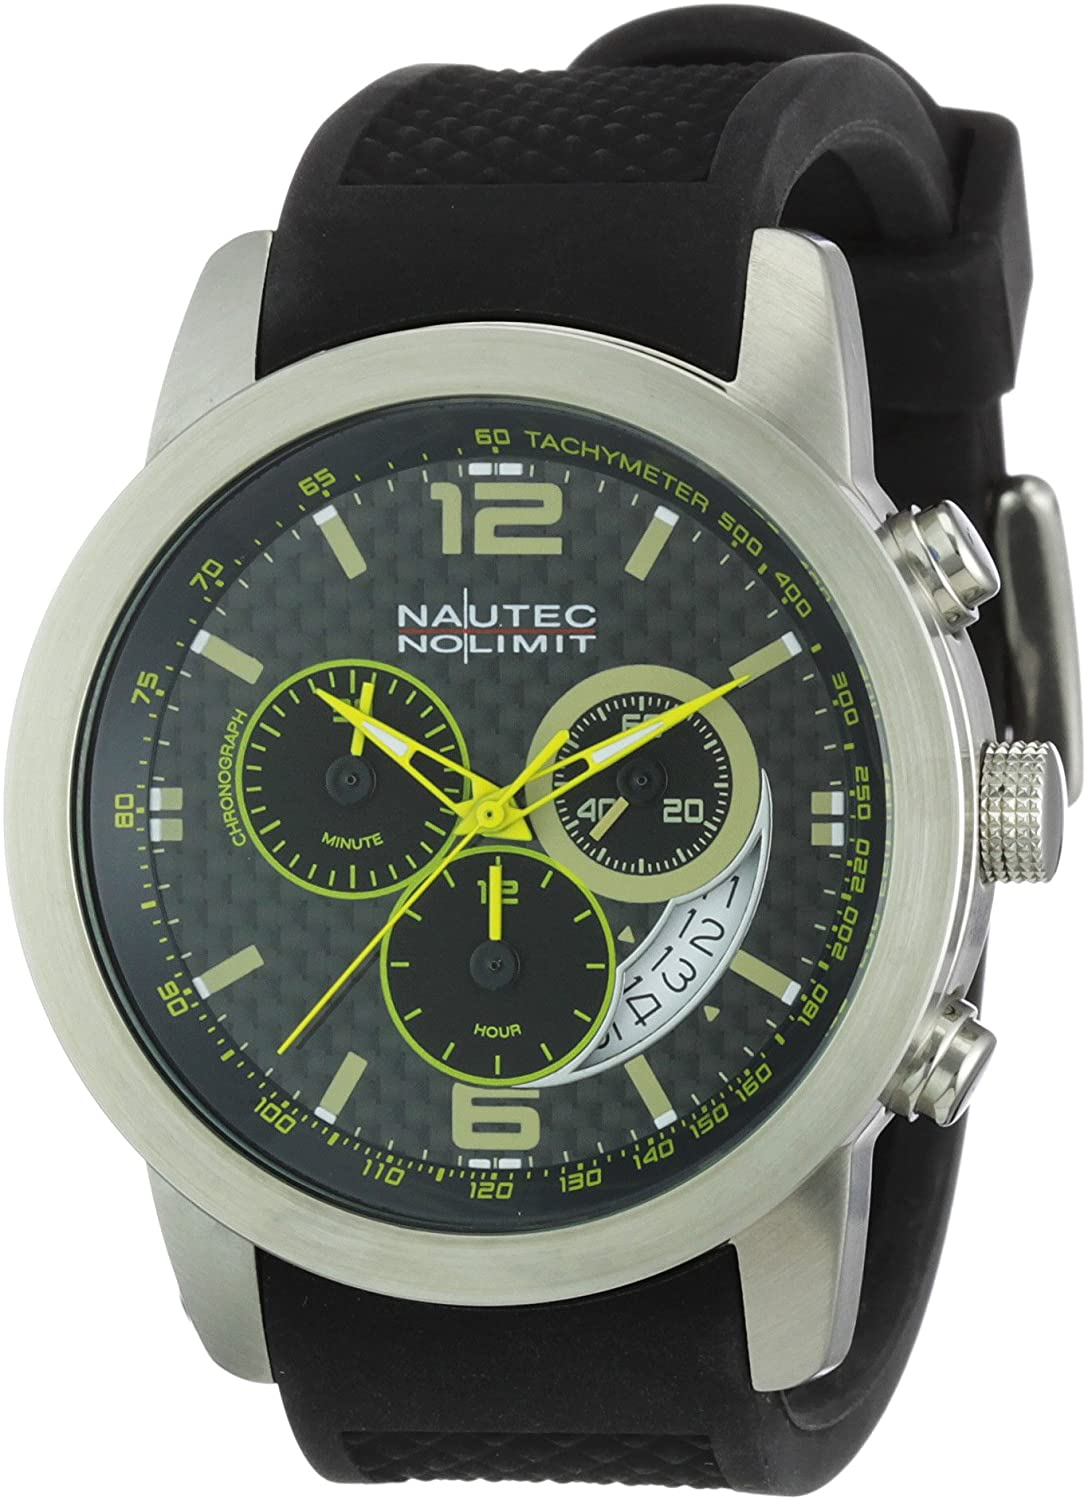 Nautec No Limit Herren-Armbanduhr Cobra CO QZ-RBSTSTCA-SC